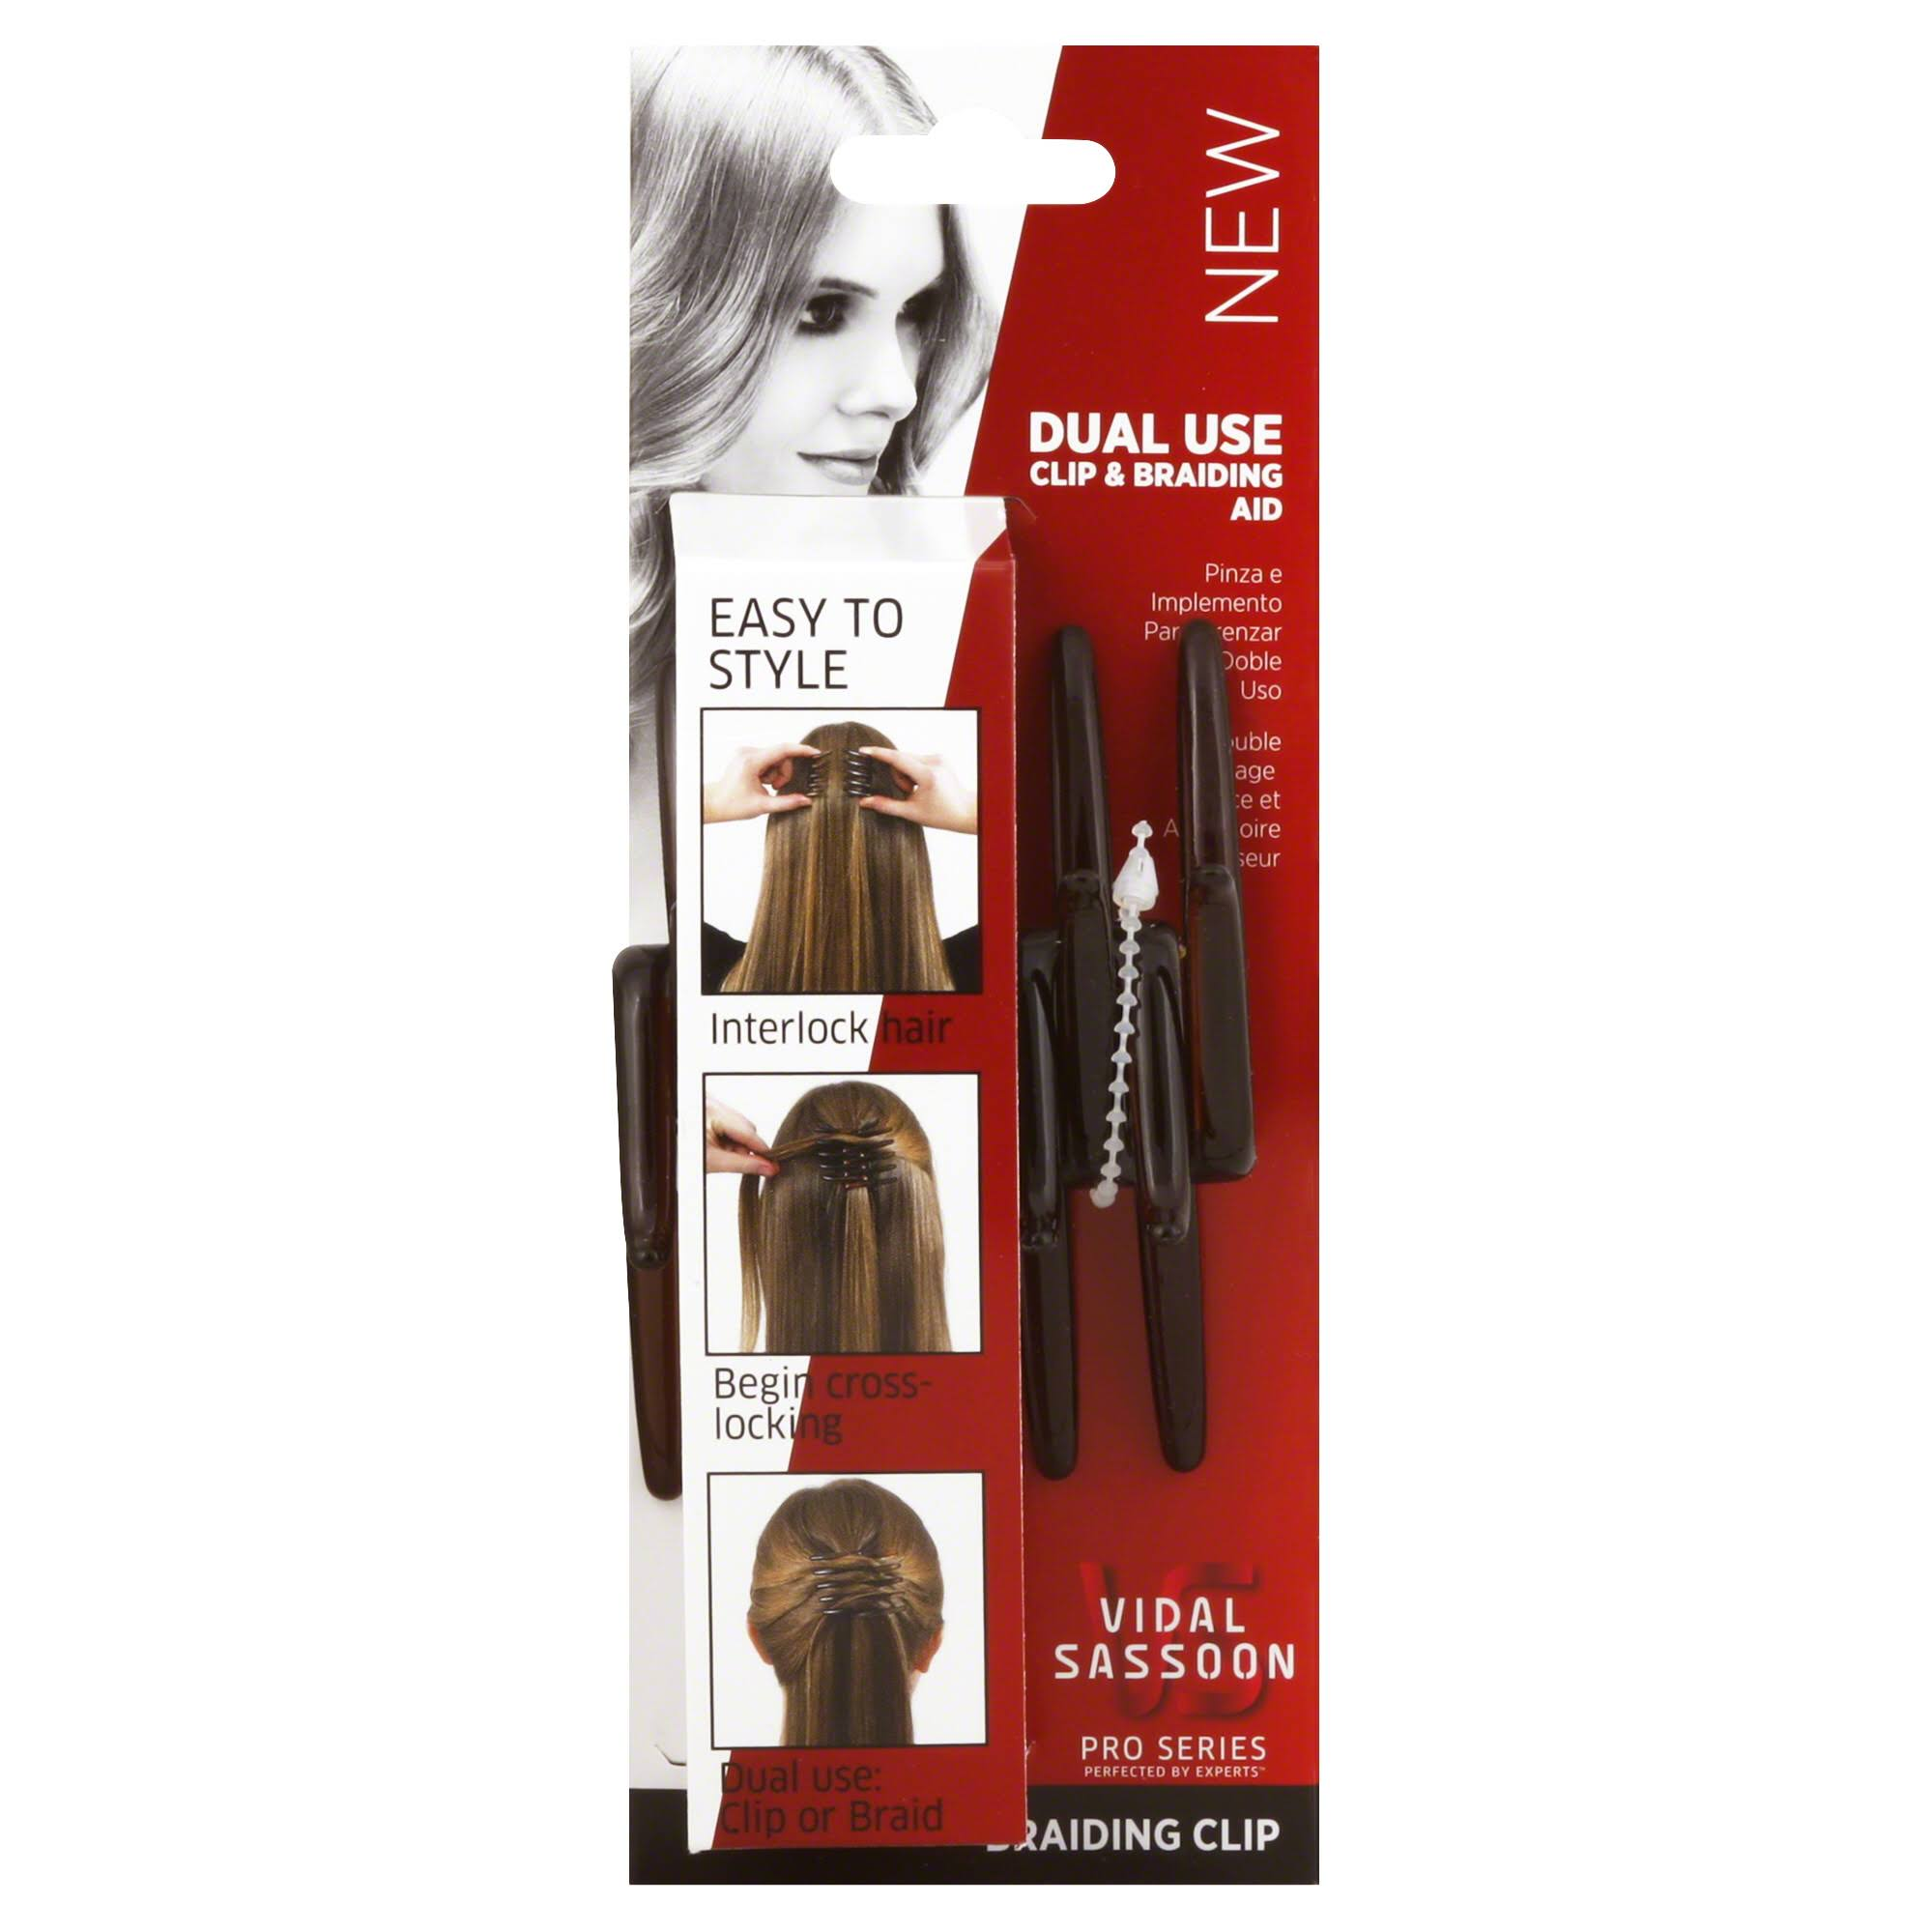 Vidal Sassoon Pro Series Clip & Braiding Aid, Dual Use